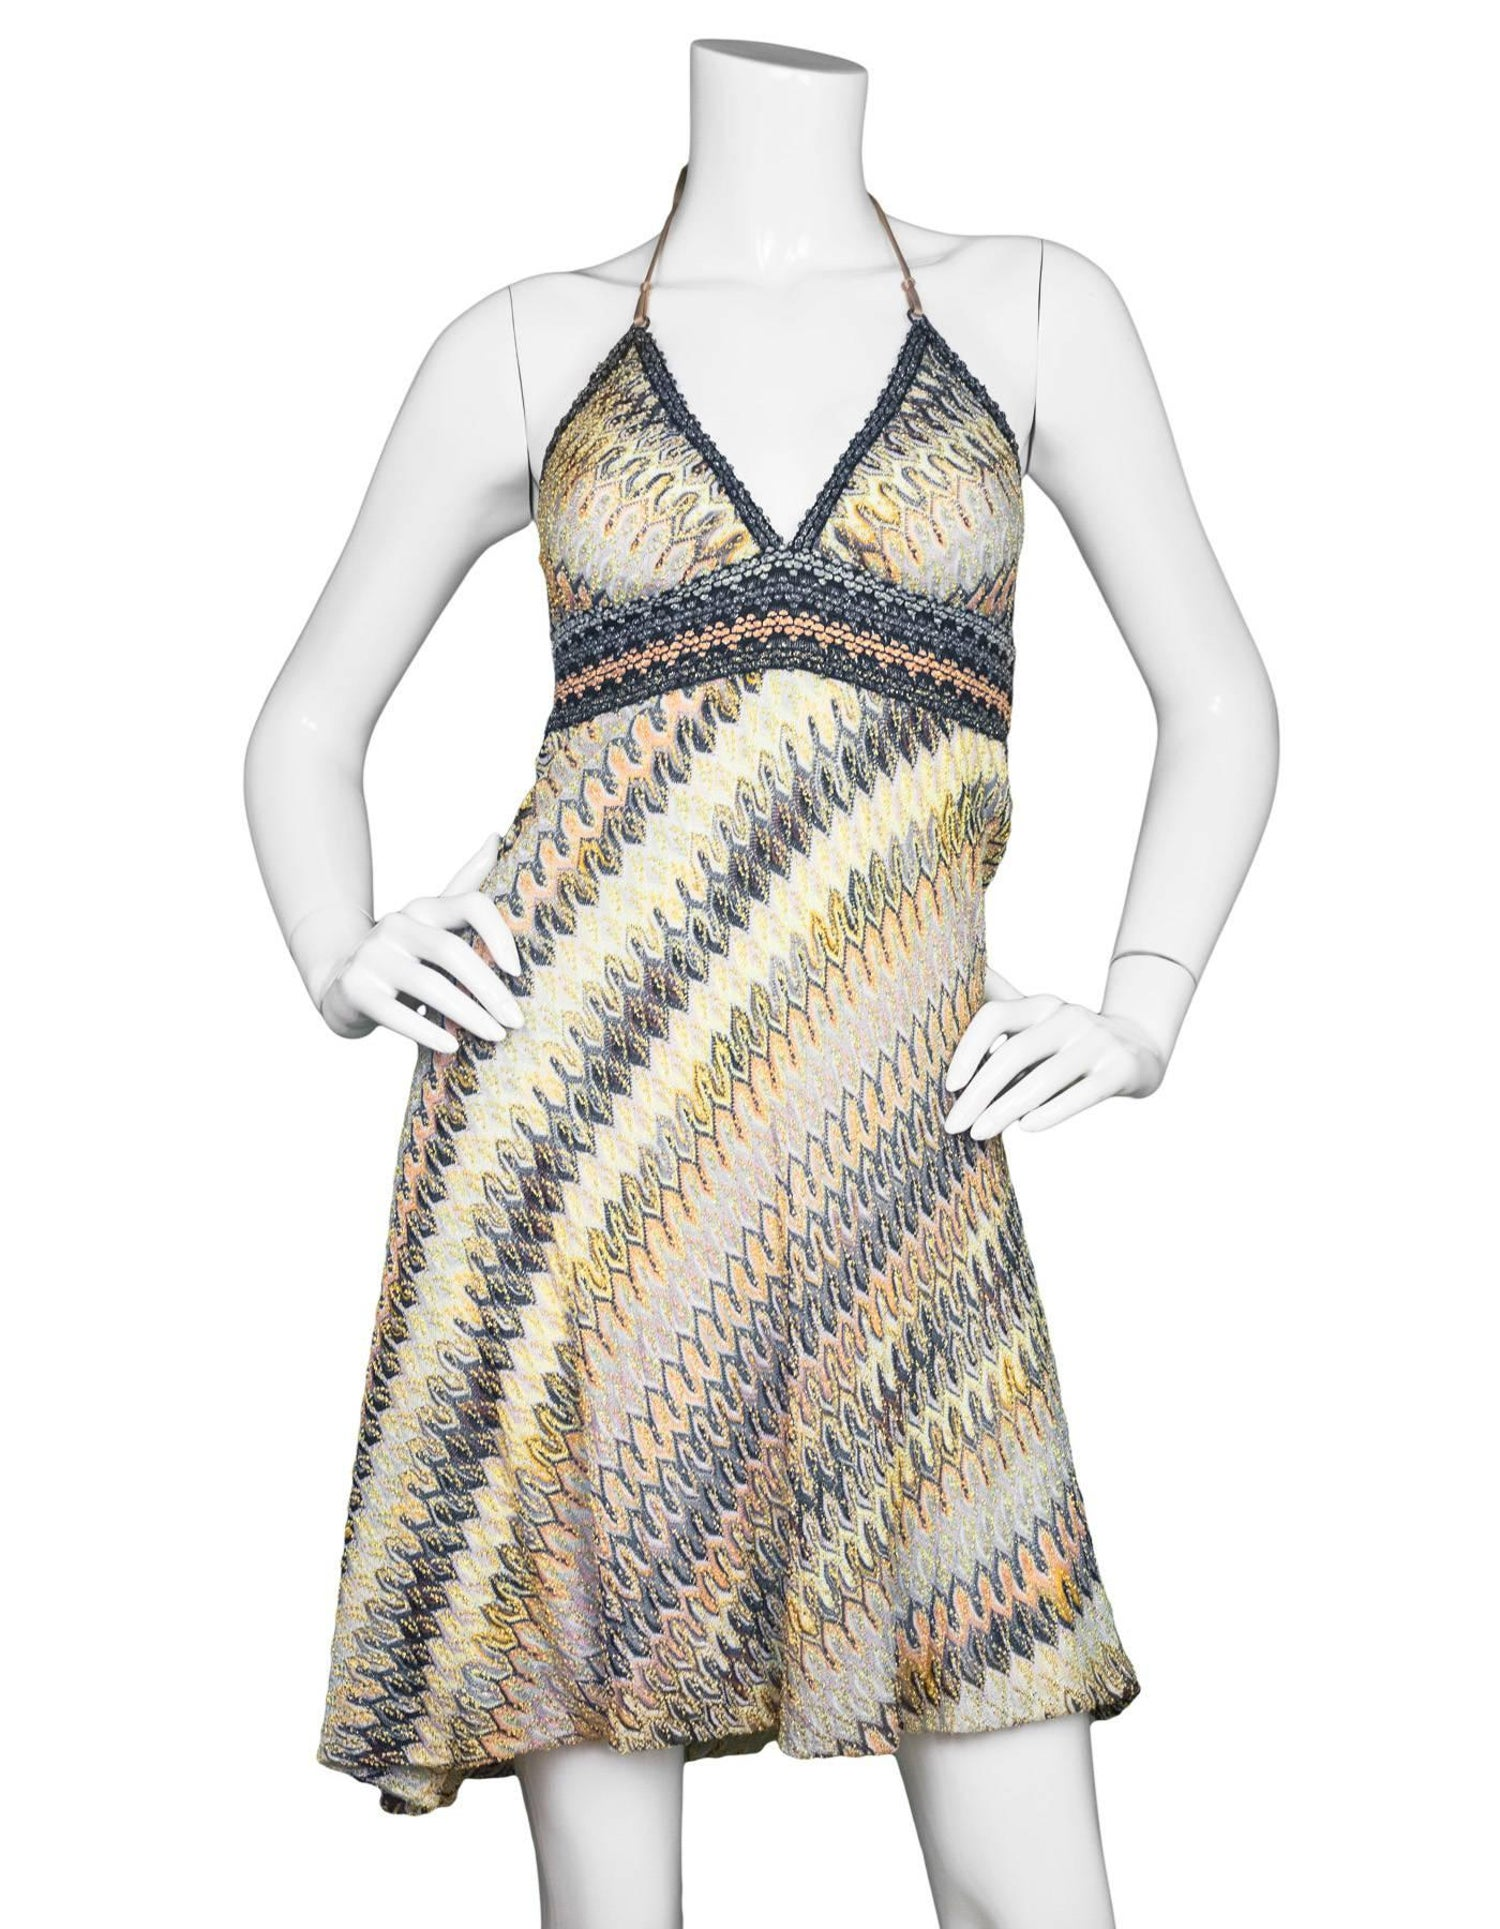 9675ba57537a Missoni Mare Multi-Colored Knit Halter Dress sz S For Sale at 1stdibs